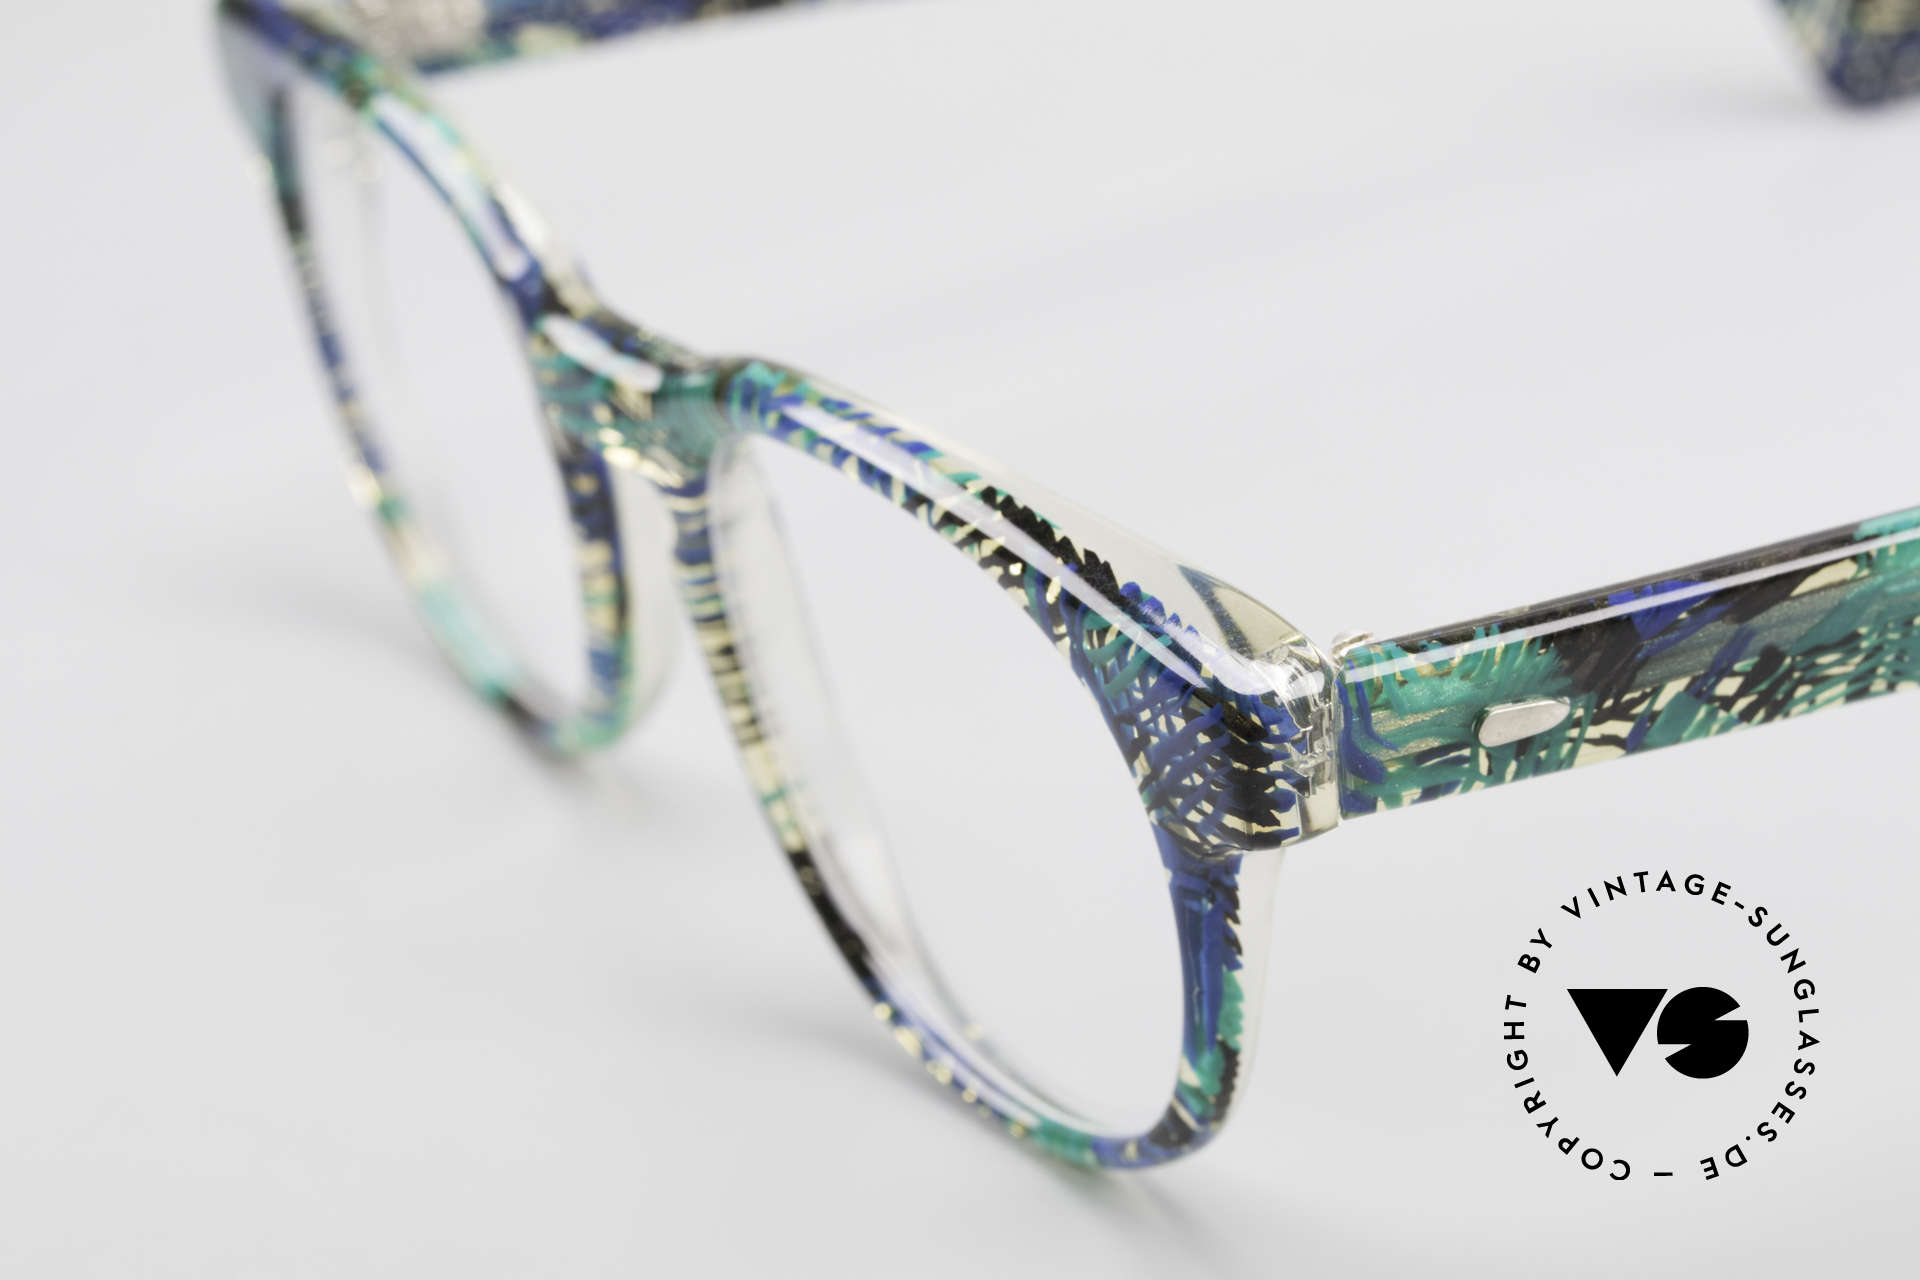 Alain Mikli 903 / 391 Panto Frame Green Patterned, handmade quality: green/blue/black/clear marbled, Made for Men and Women